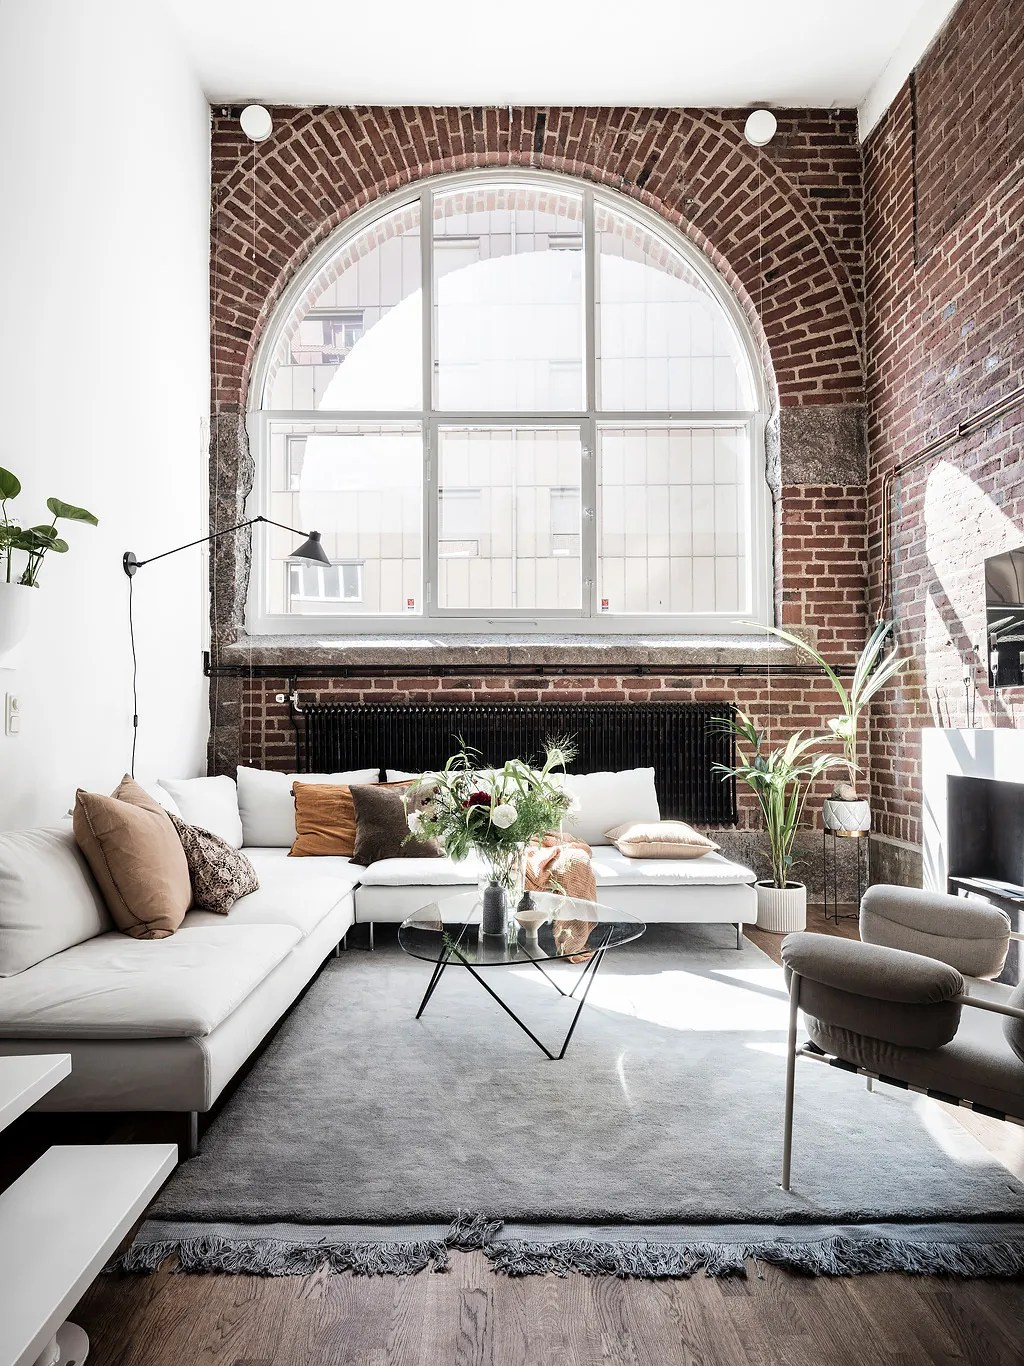 Loft with an exposed brick wall